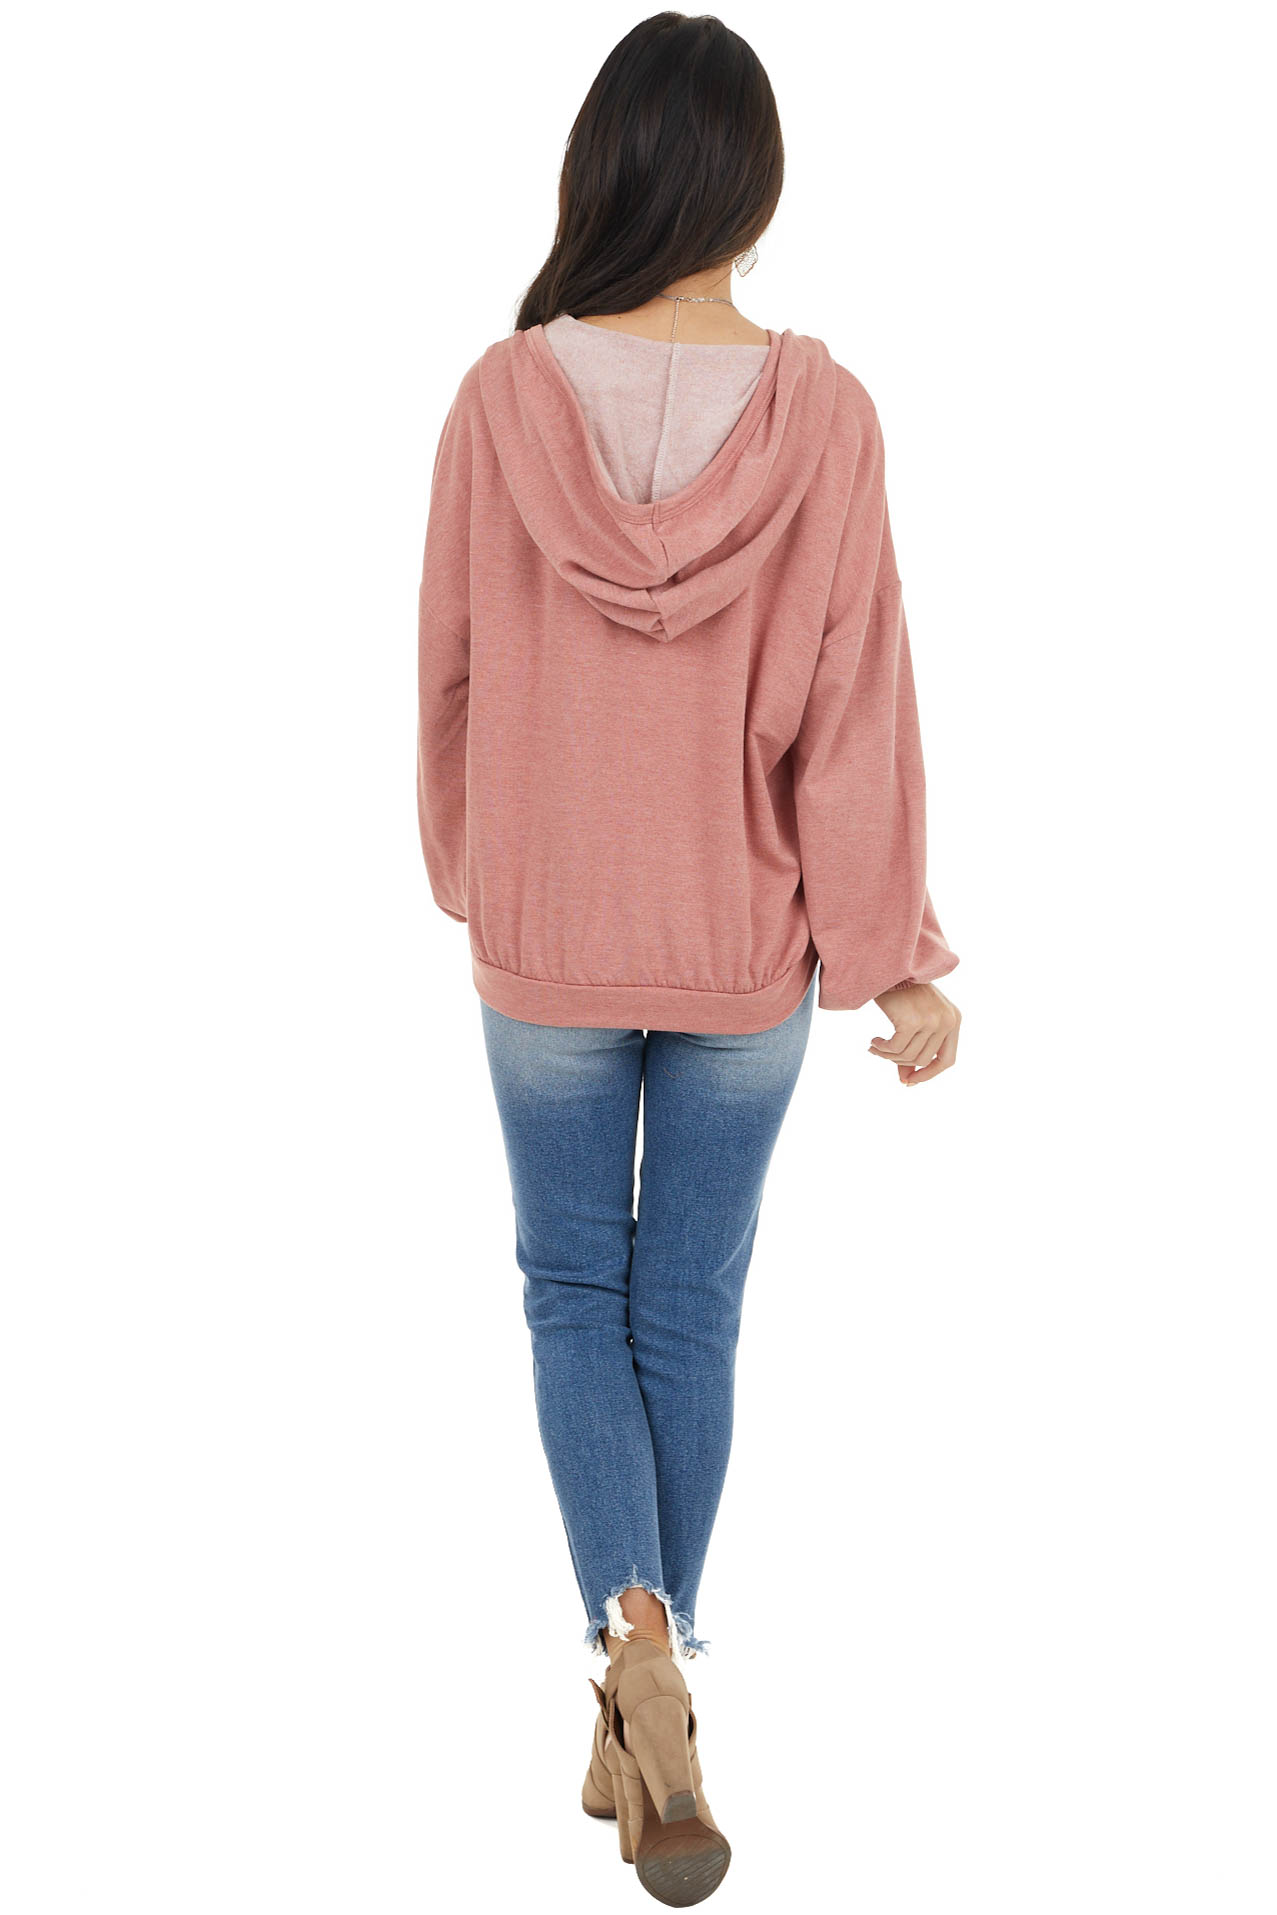 Dusty Coral Hooded Top with V Neck and Front Tie Detail